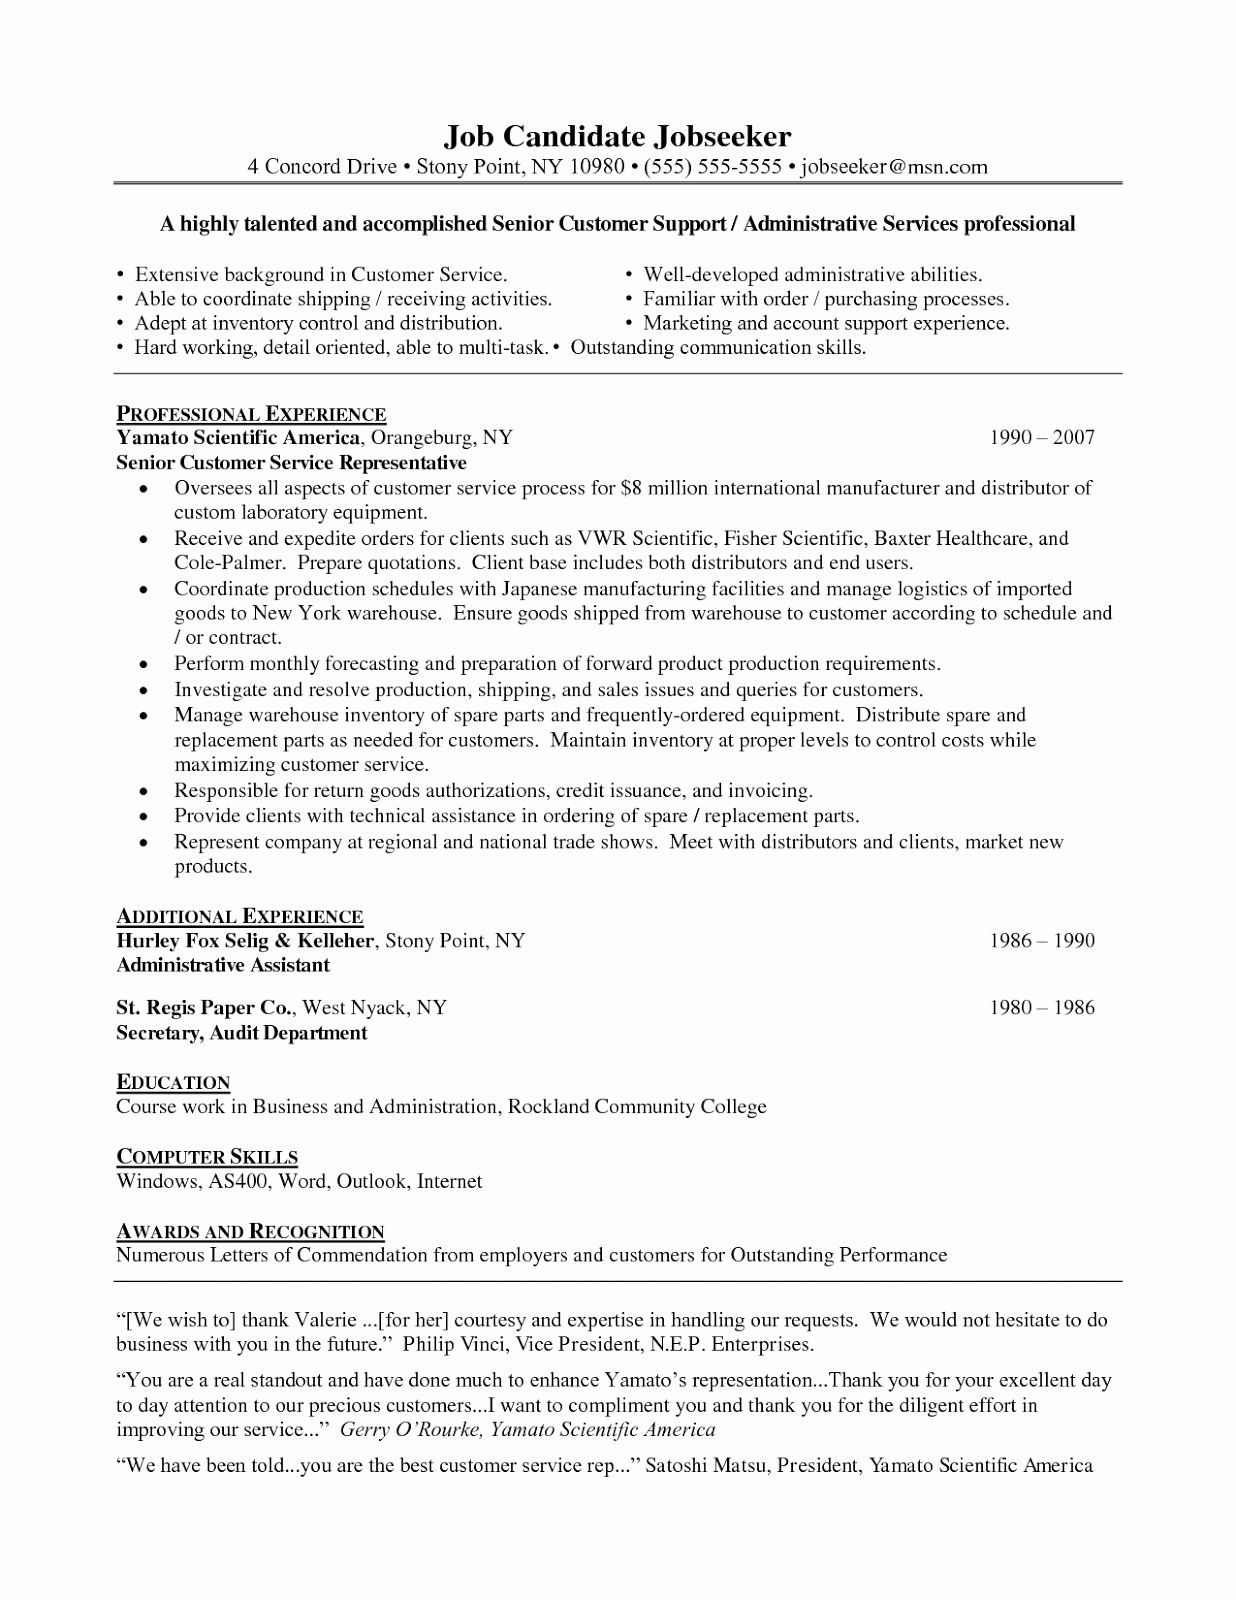 23 Customer Service Resume Objective Examples in 2020